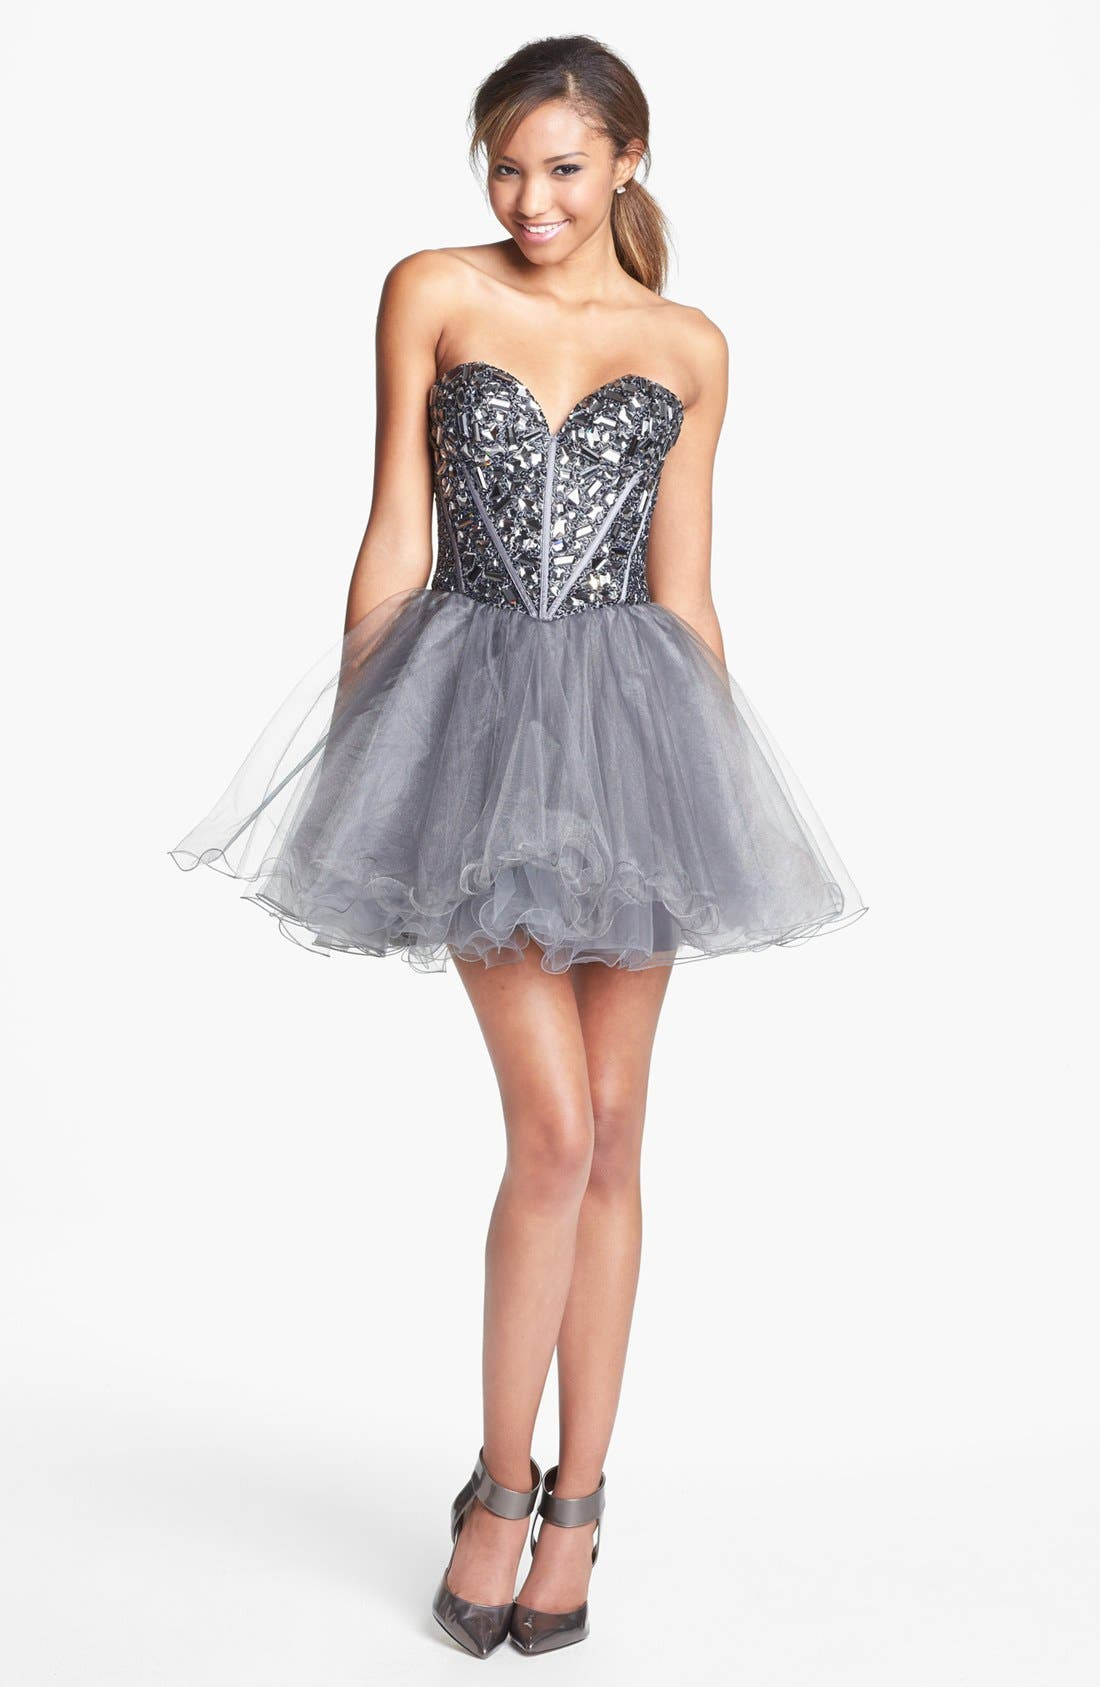 Main Image - Sherri Hill Embellished Tulle Fit & Flare Dress